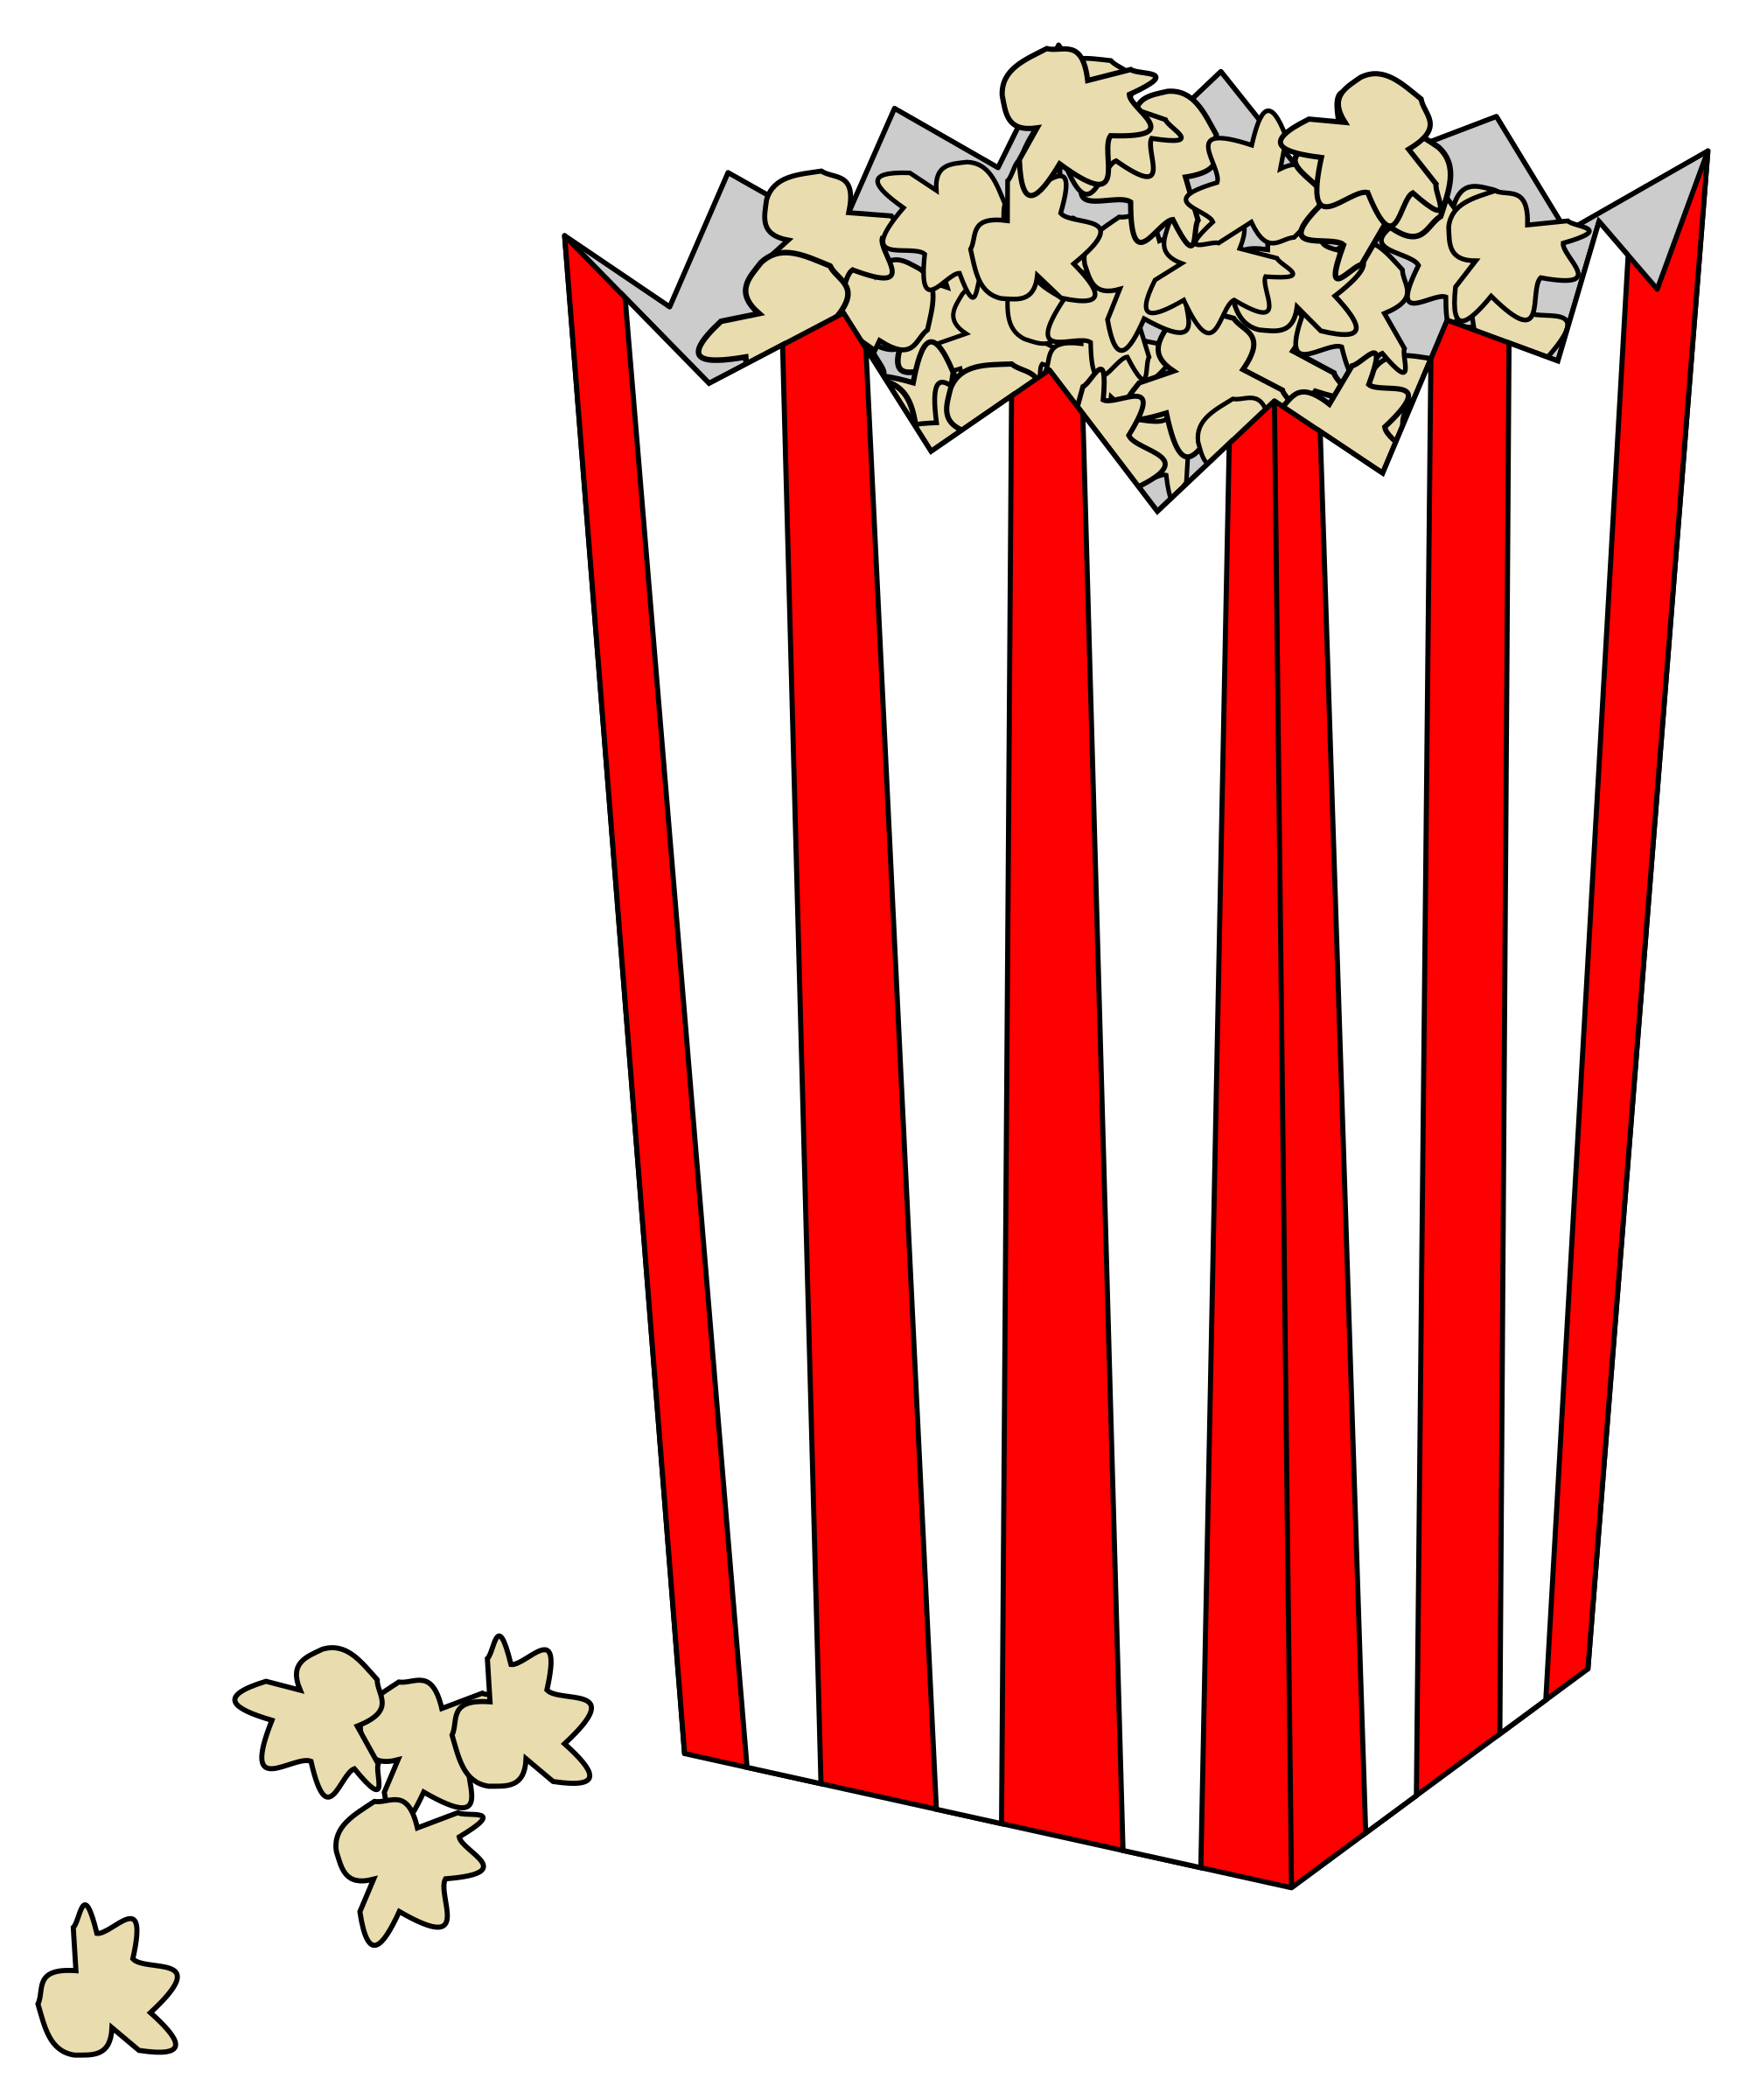 Movie Popcorn Bag by rocke86